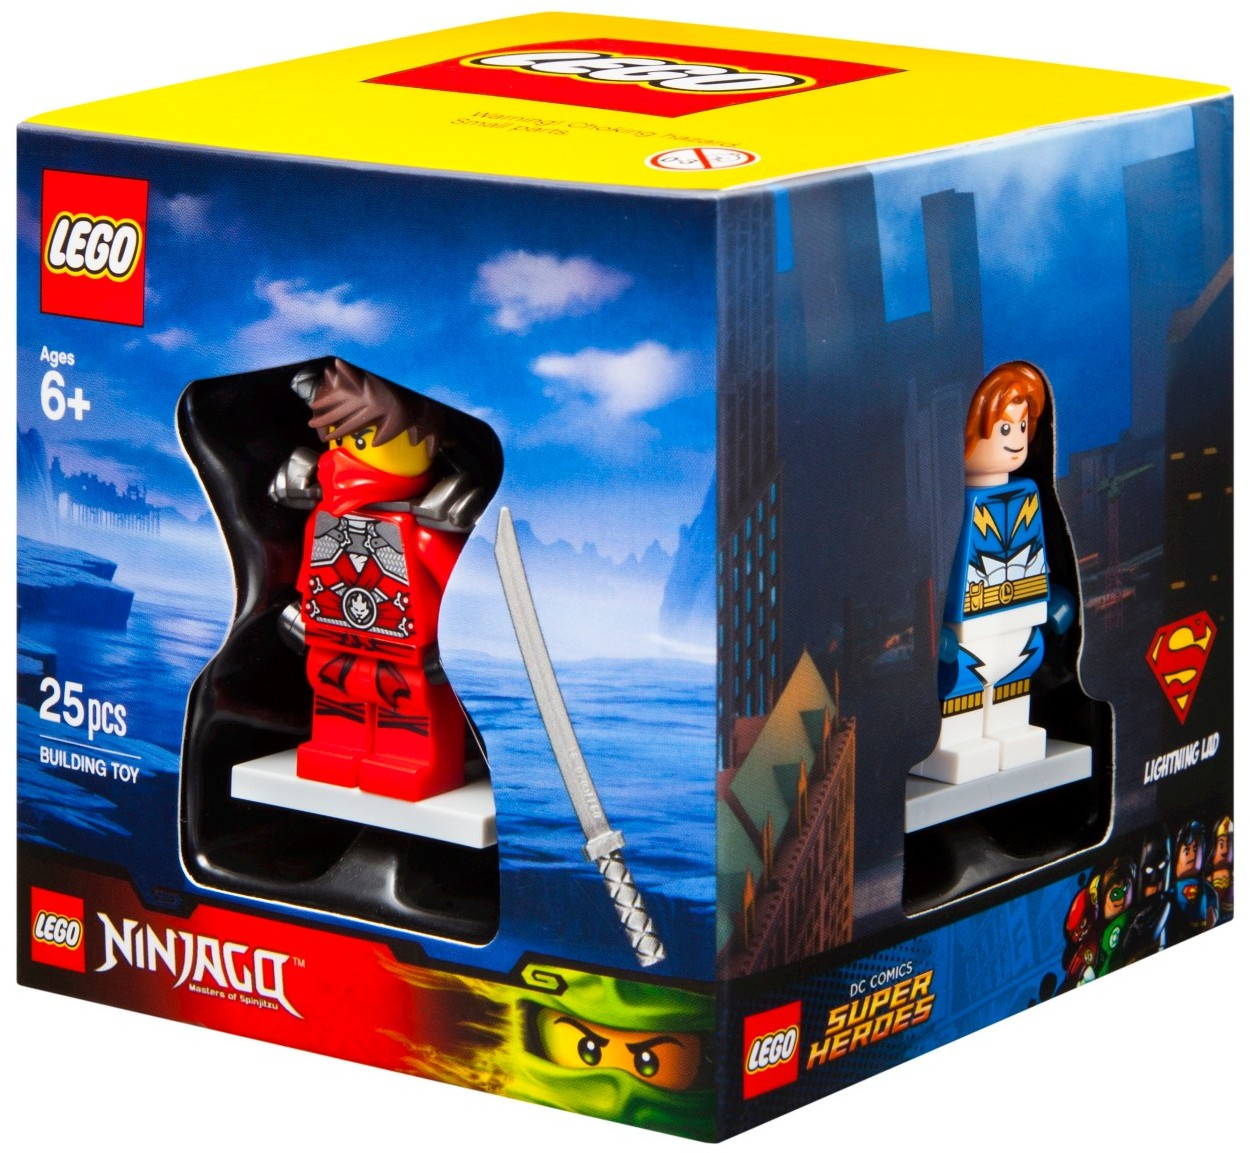 5004077 2015 Minifigure Gift Set